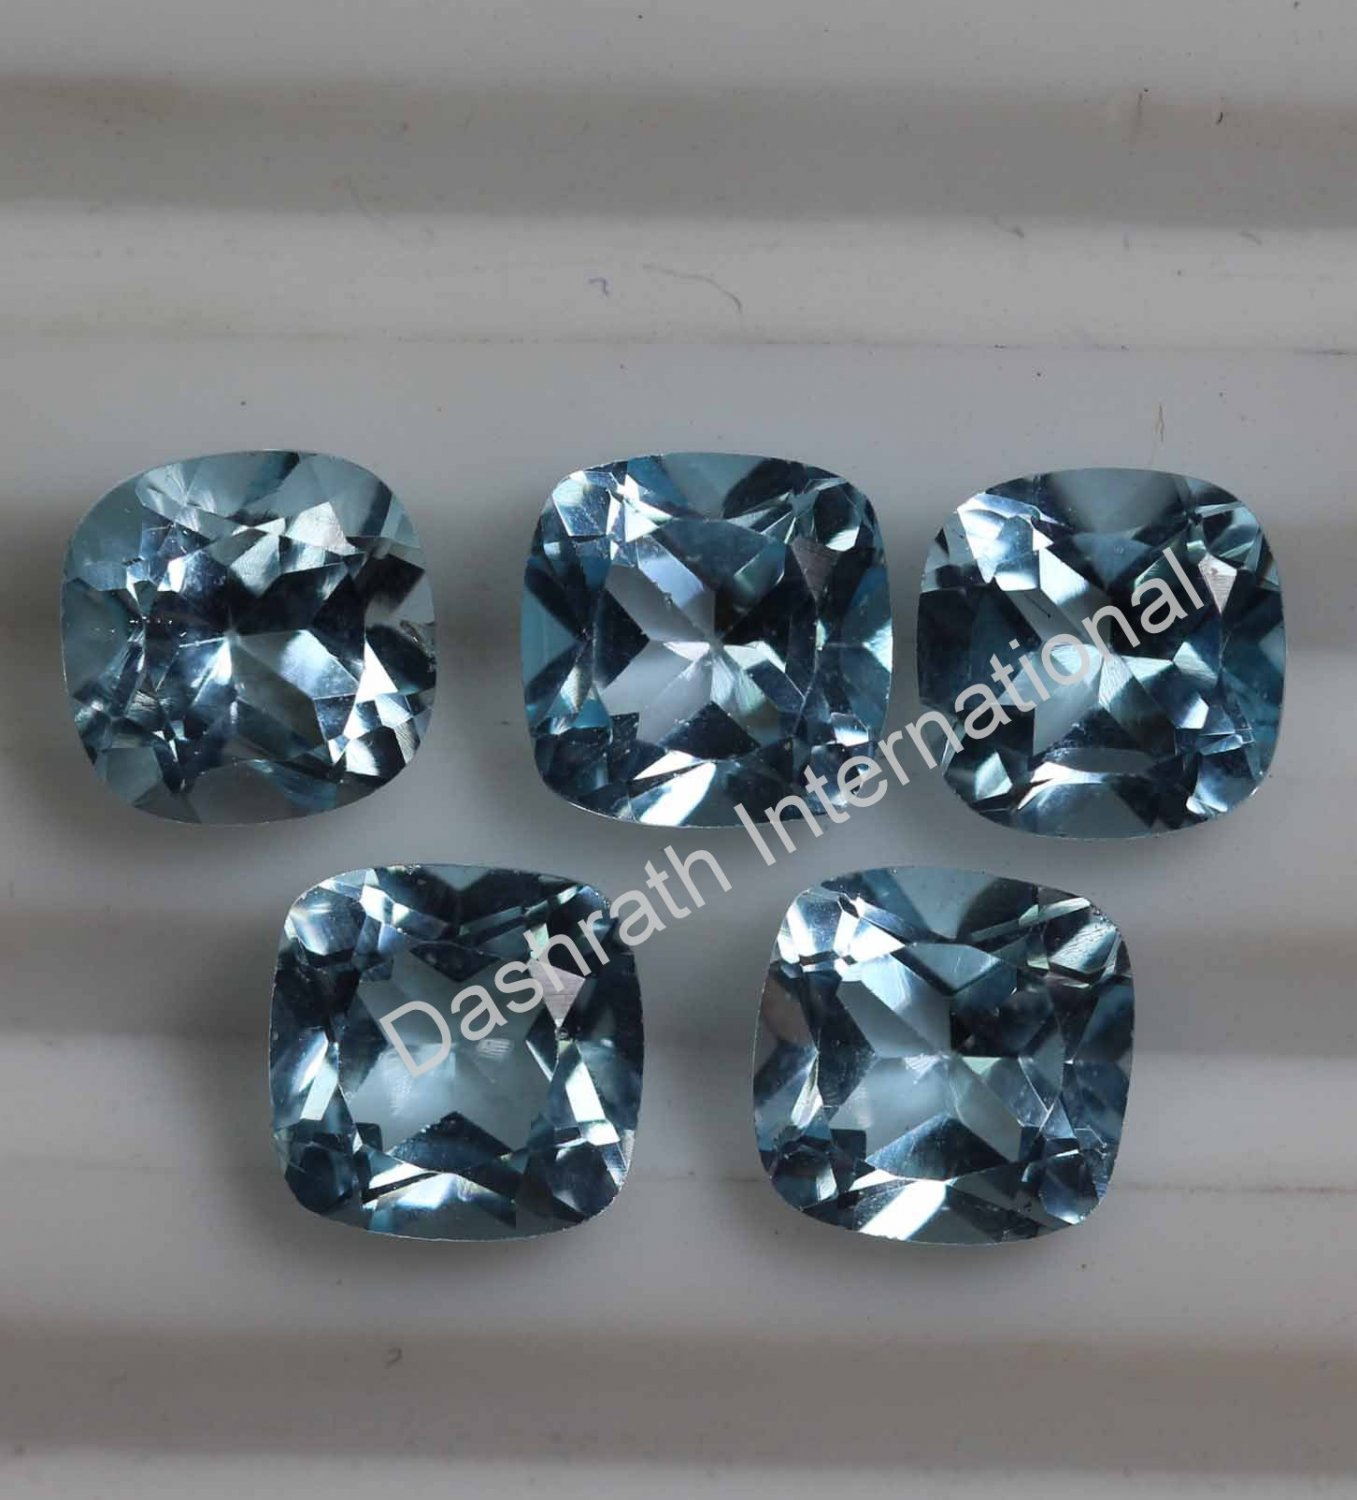 5mm Natural Sky Blue Topaz Faceted Cut Cushion 10 Pieces Lot Top Quality Loose Gemstone